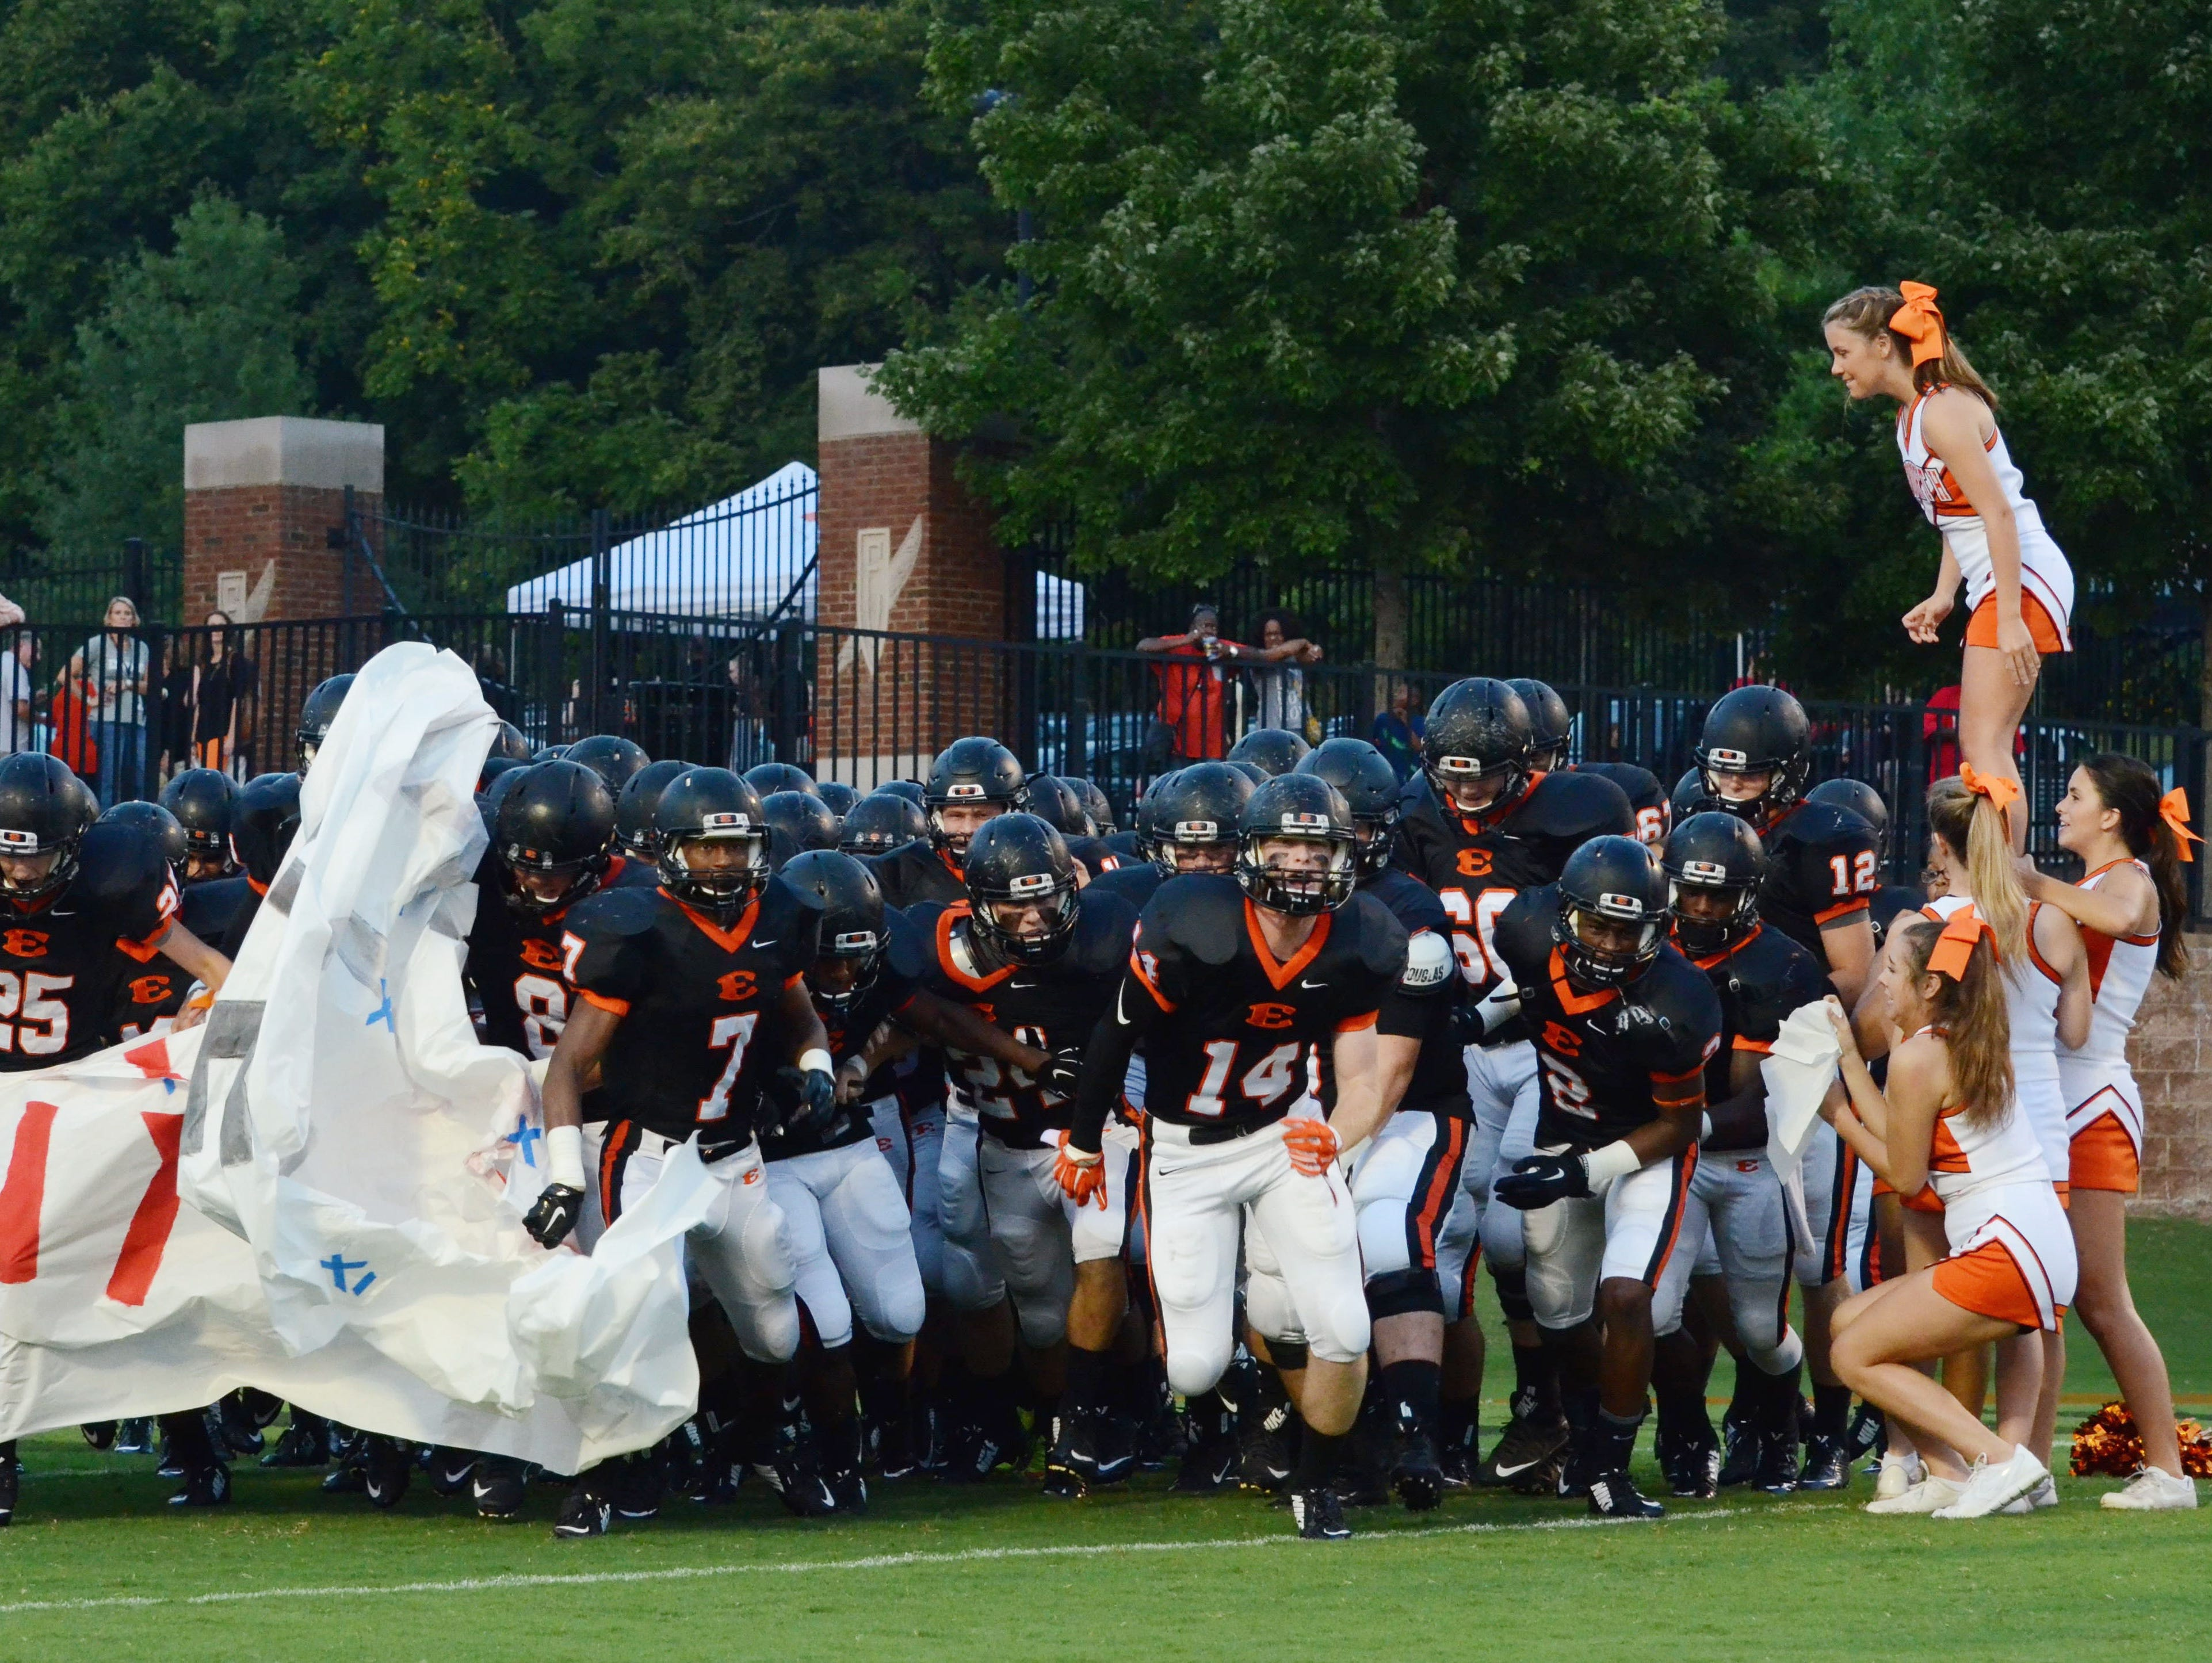 Ensworth takes the field prior to Friday's Division II-AA East/Middle Region opener against Baylor.